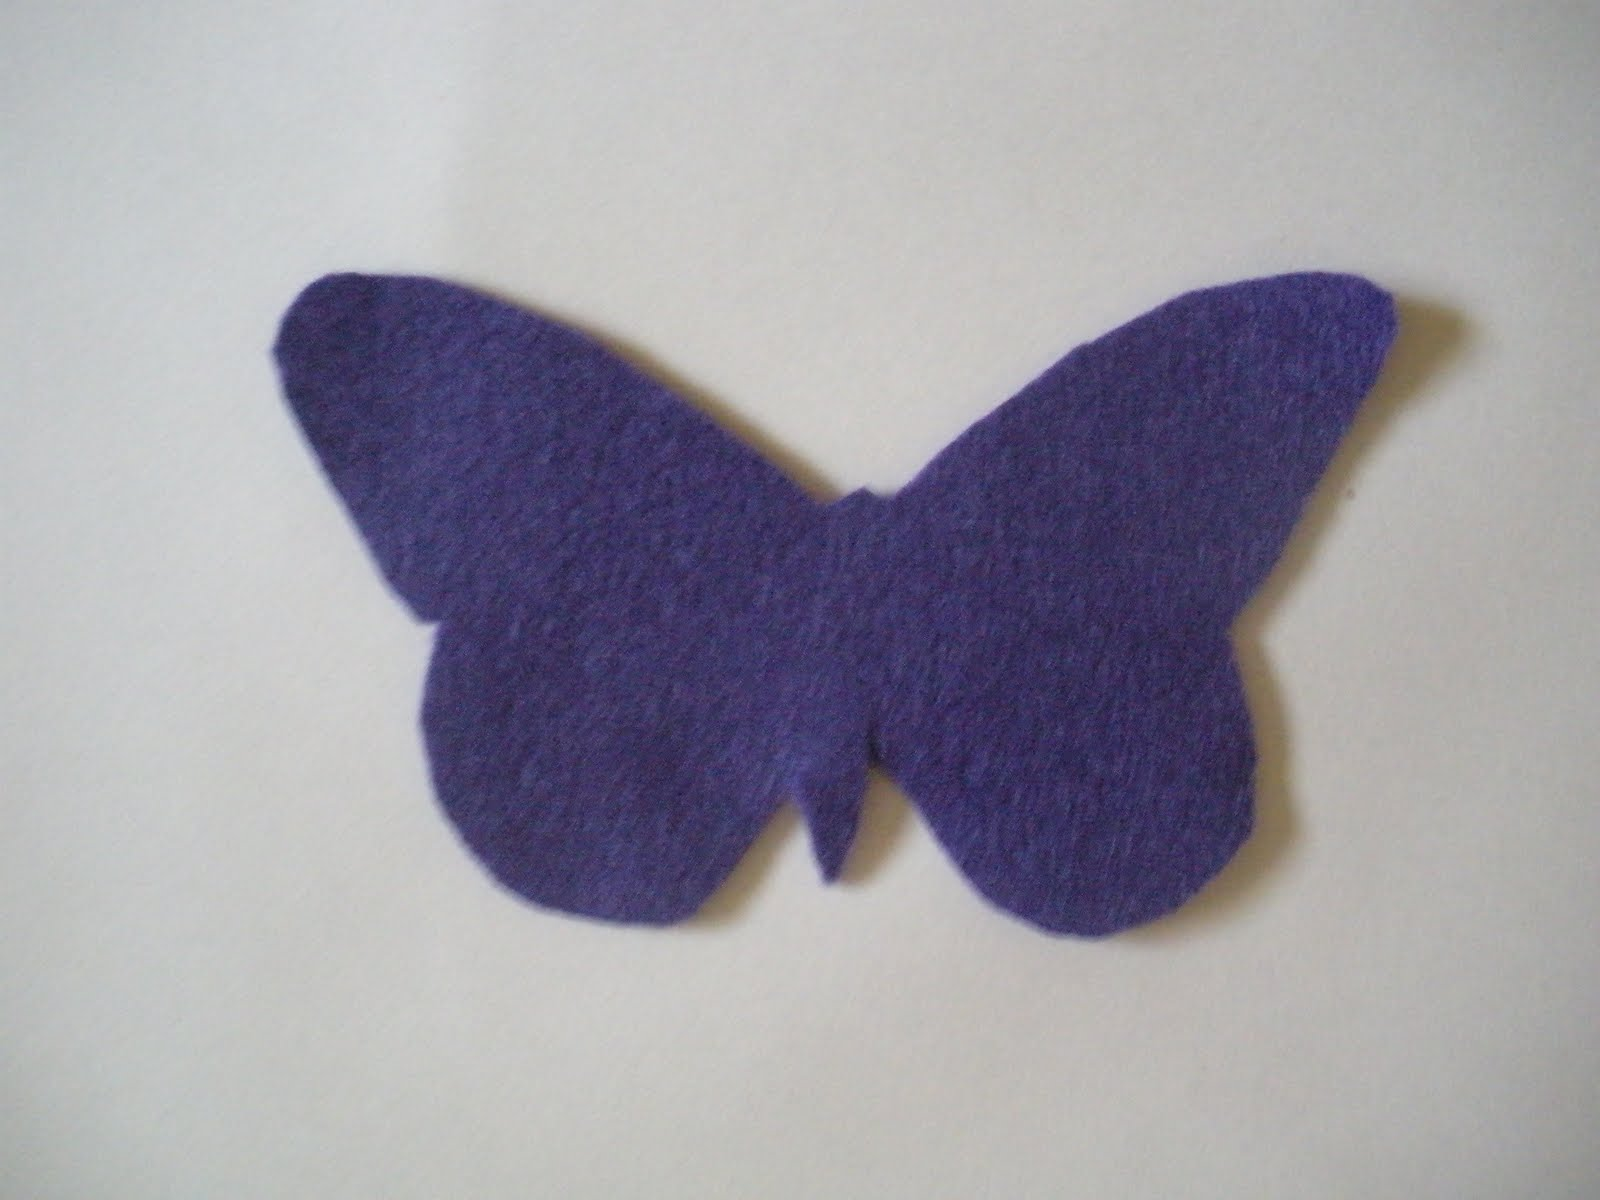 Felt Dog Patterns http://www.craftycritique.com/2011/08/tutorial-felt-butterfly-dog-collar.html